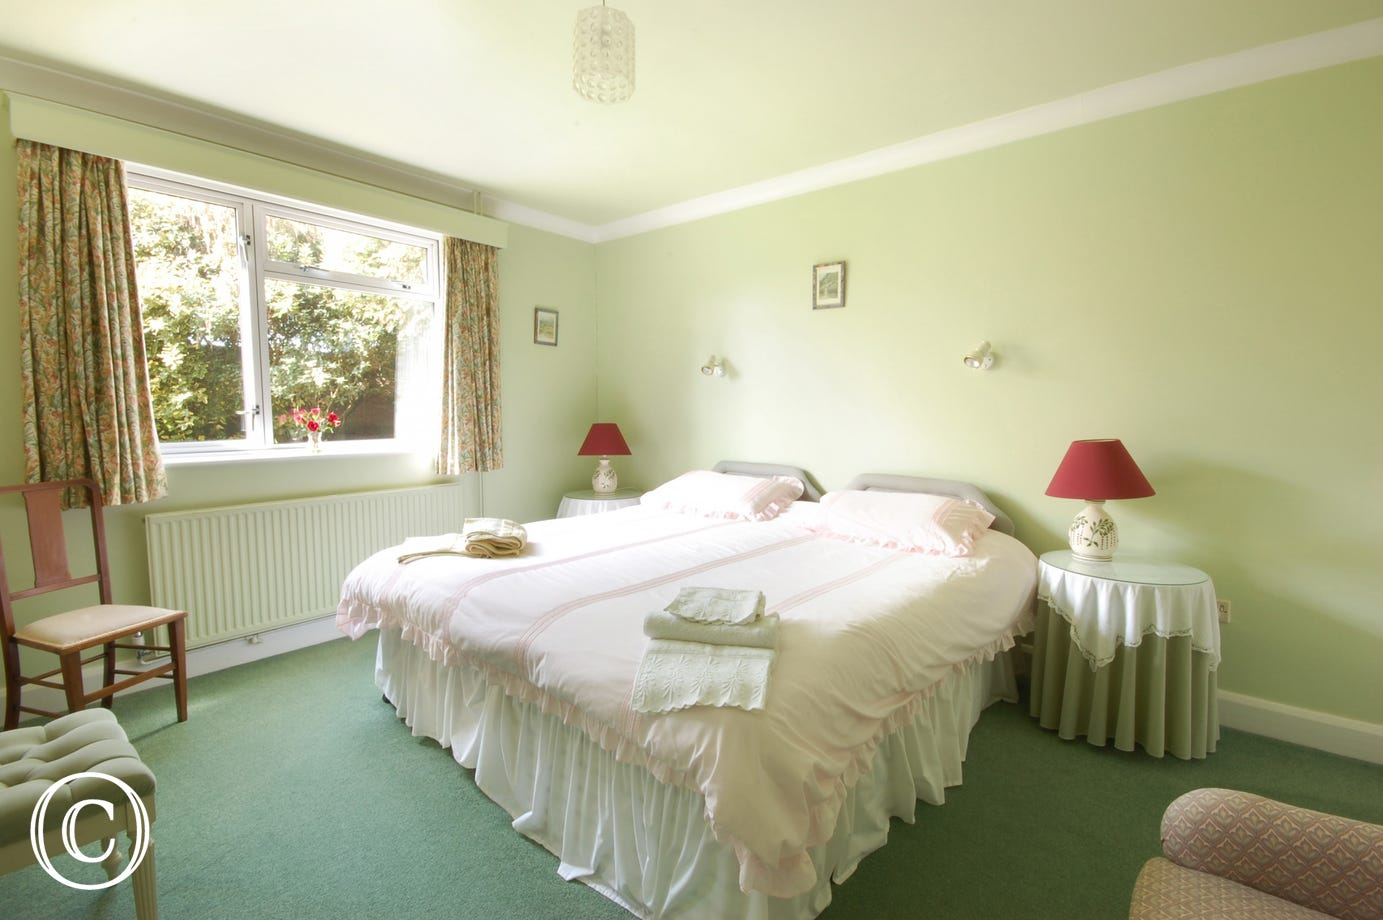 Delightful king size bedded room with ensuite shower room.